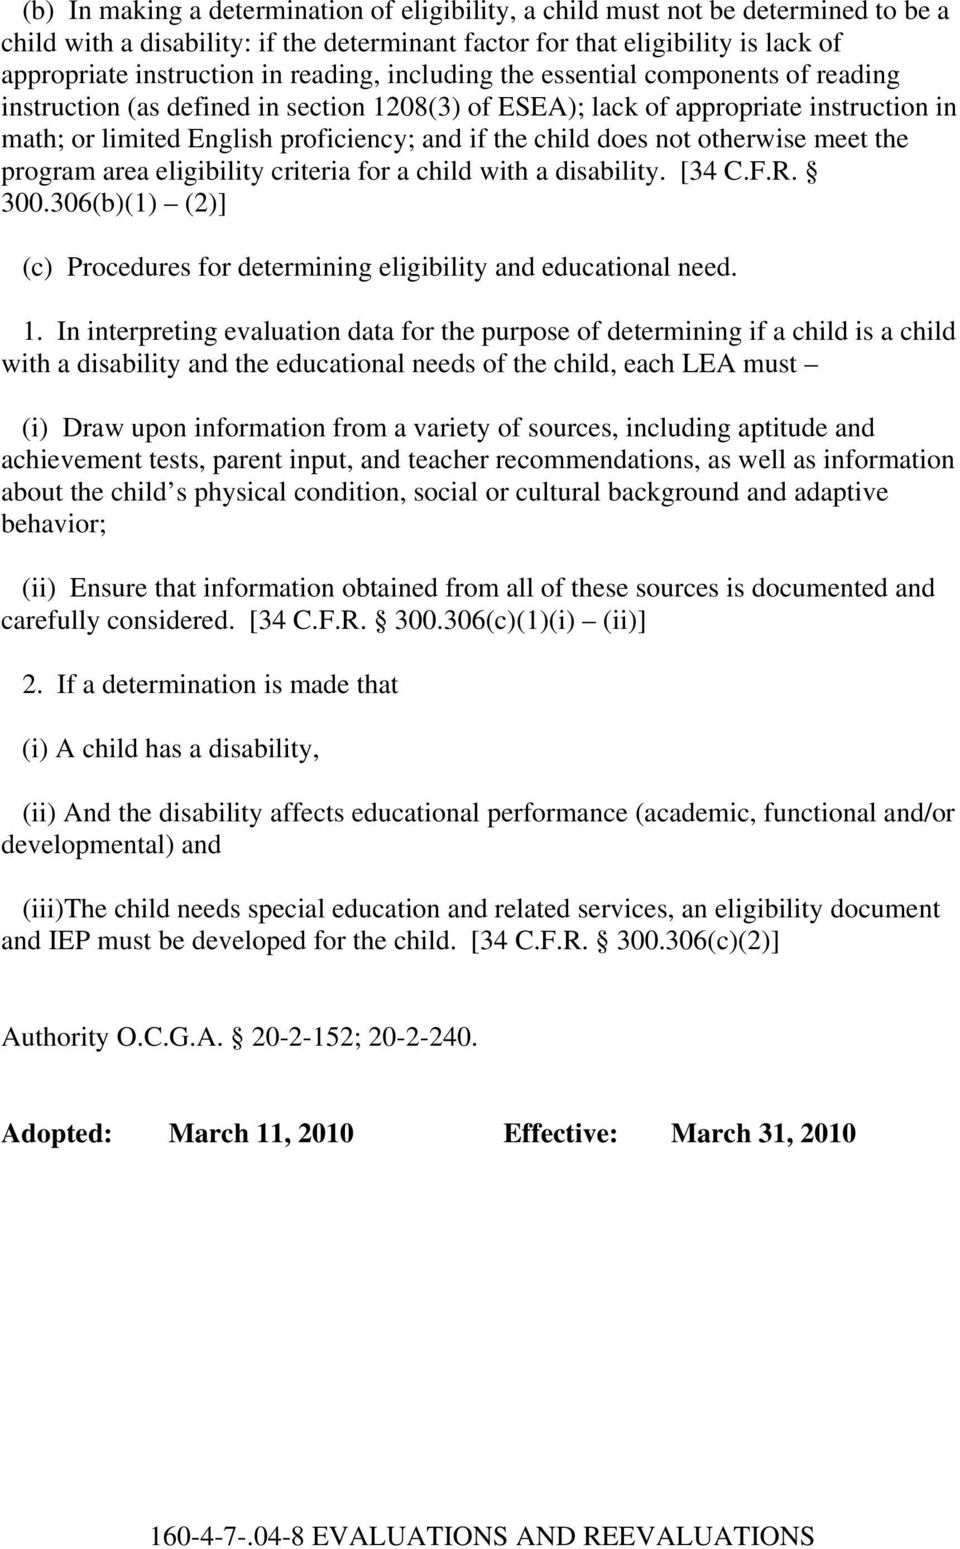 does not otherwise meet the program area eligibility criteria for a child with a disability. [34 C.F.R. 300.306(b)(1) (2)] (c) Procedures for determining eligibility and educational need. 1.